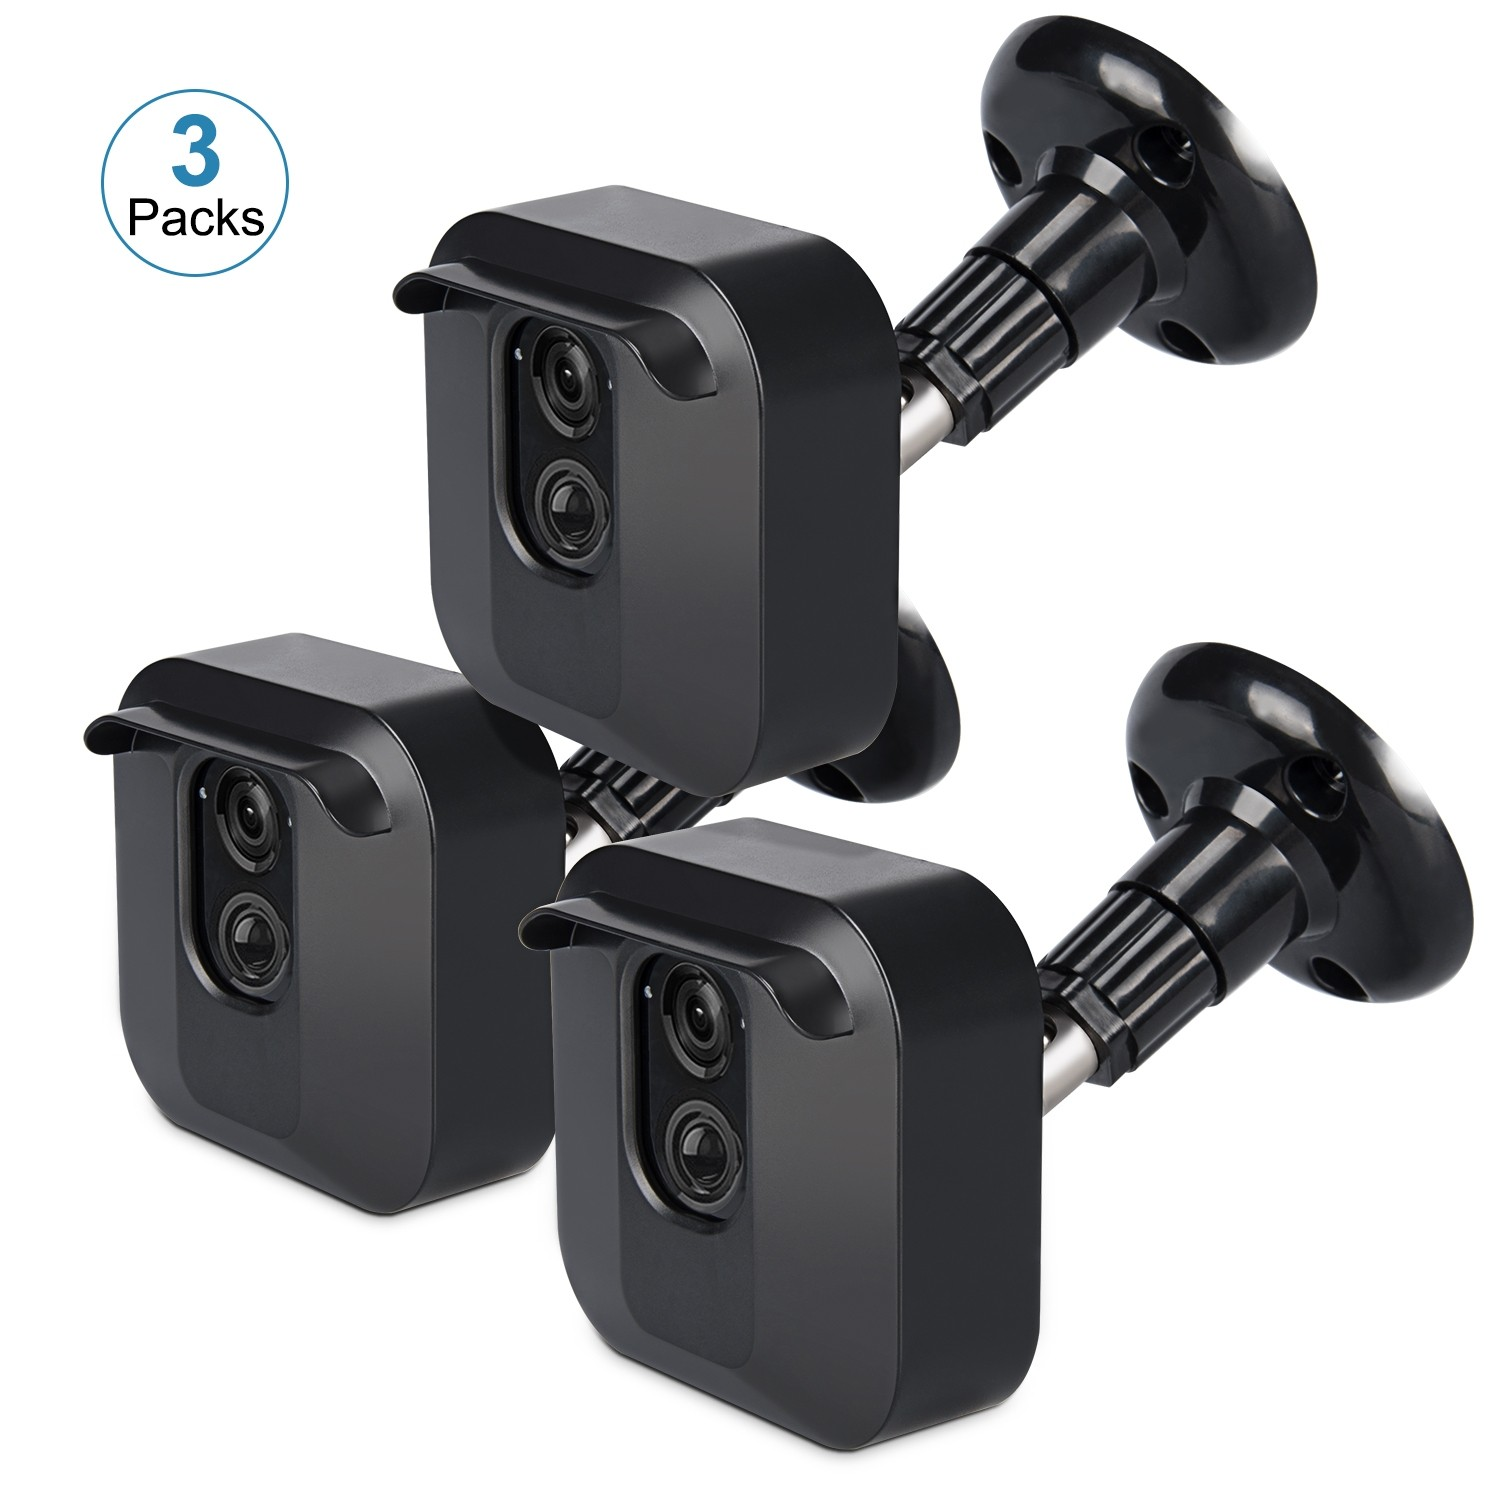 Kupton Wall Mount Housing Bracket for Blink XT Blink XT2 Camera (3 Packs), 360 Degree Adjustable Weather-Proof Protective Housing Cover + Holder Stand for Blink XT/ XT2 Outdoor Camera Security System